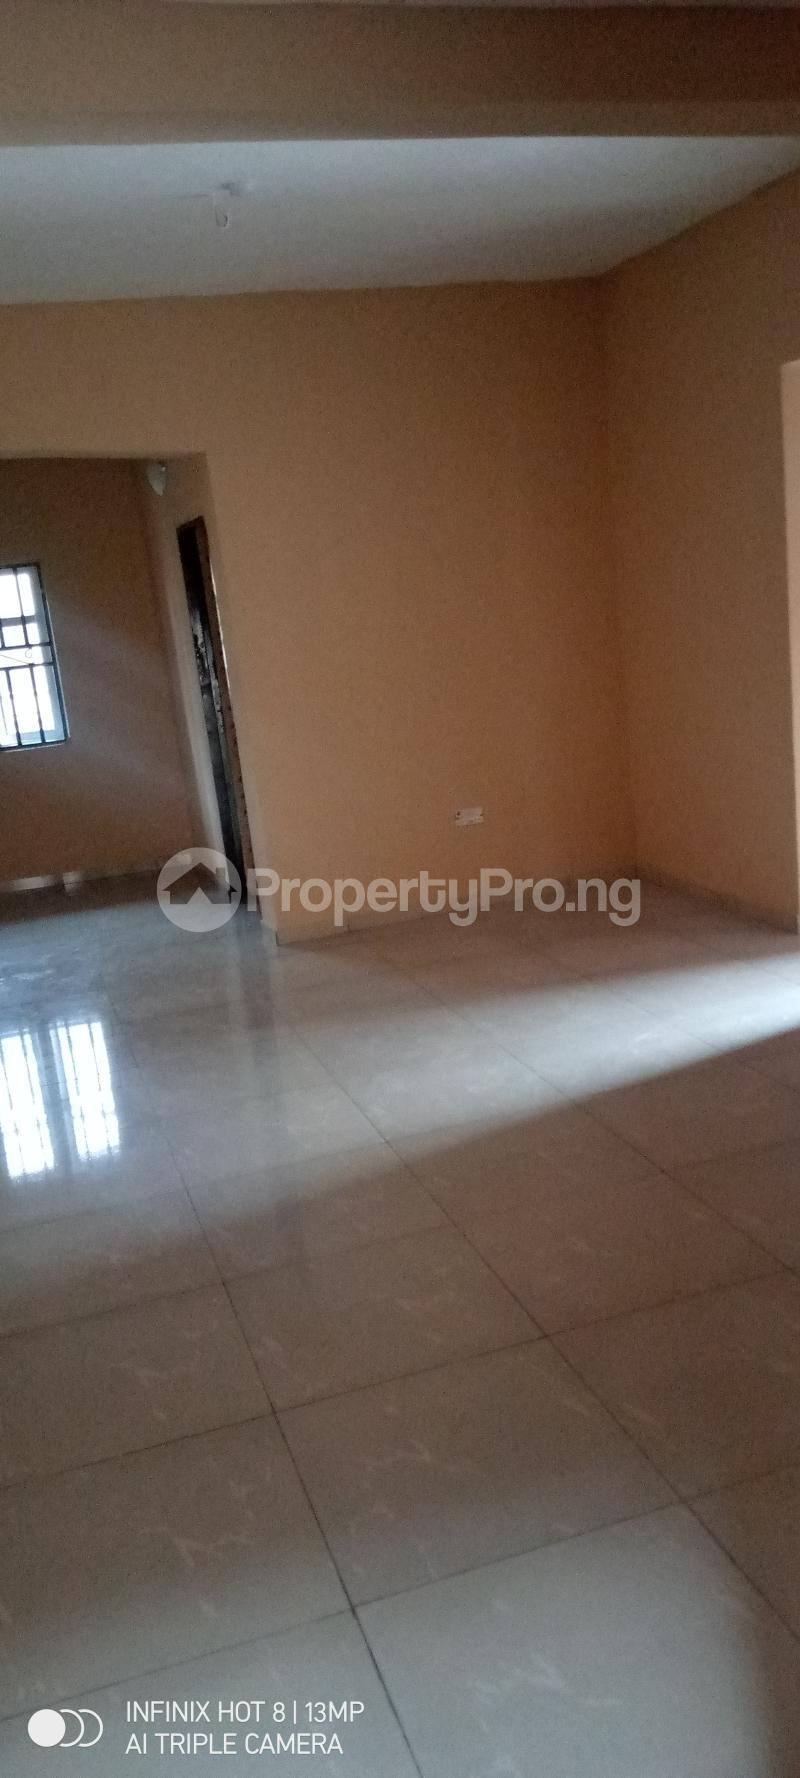 2 bedroom Flat / Apartment for rent Ago palace way Isolo Lagos - 2